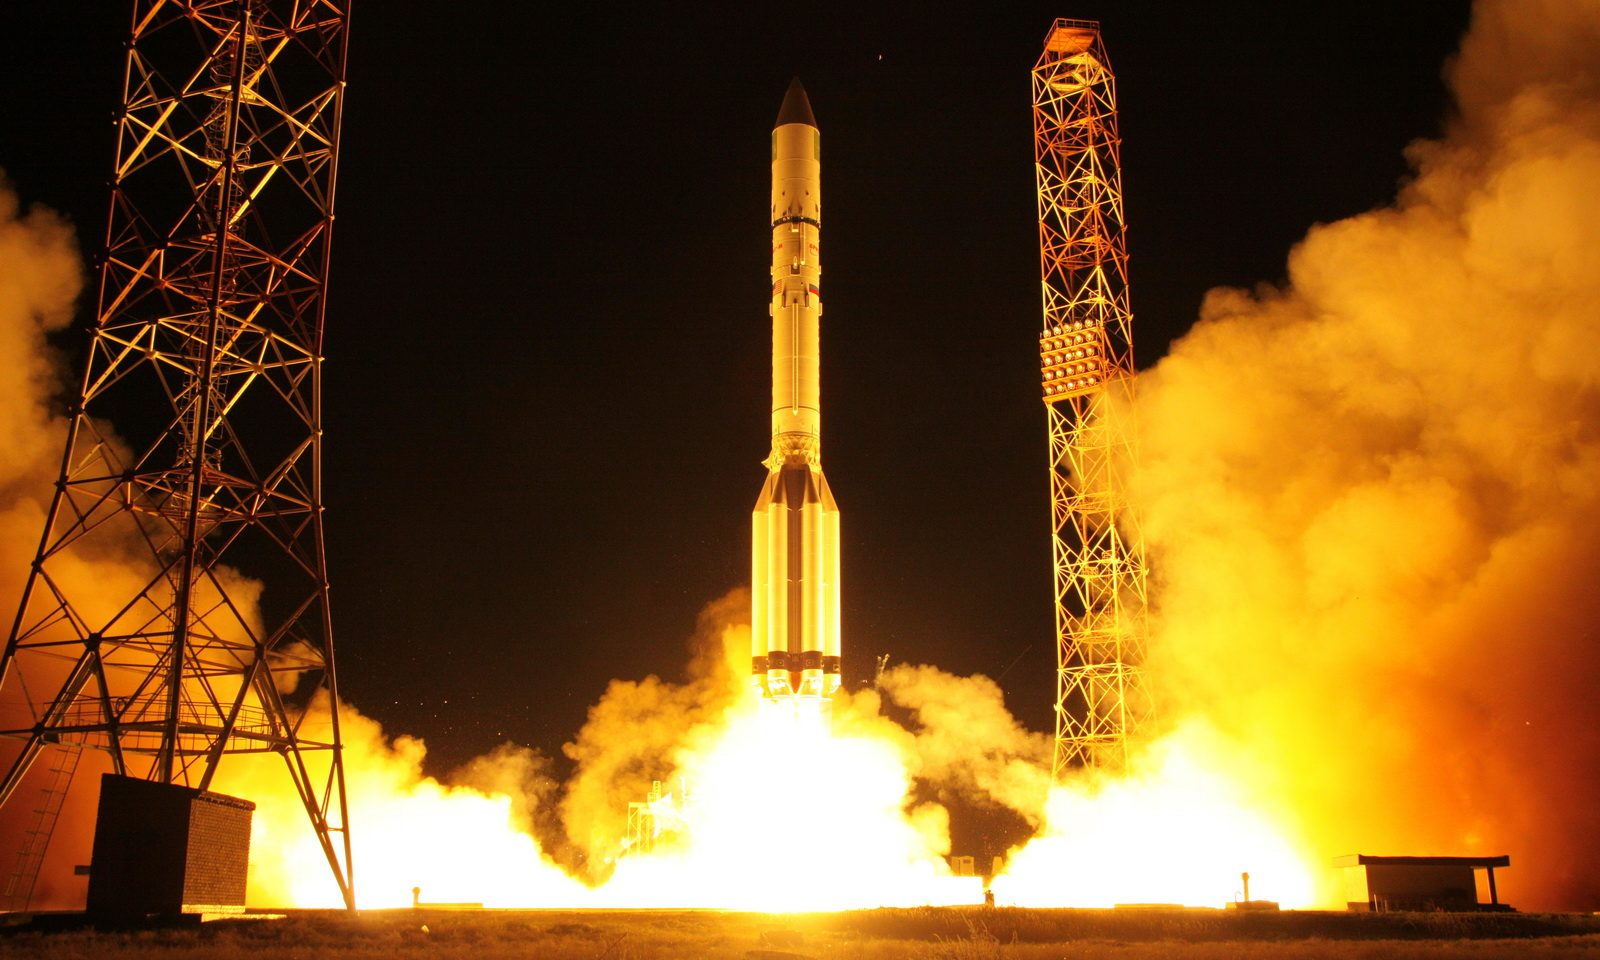 Proton-M / Briz-M launch with Amazonas-5